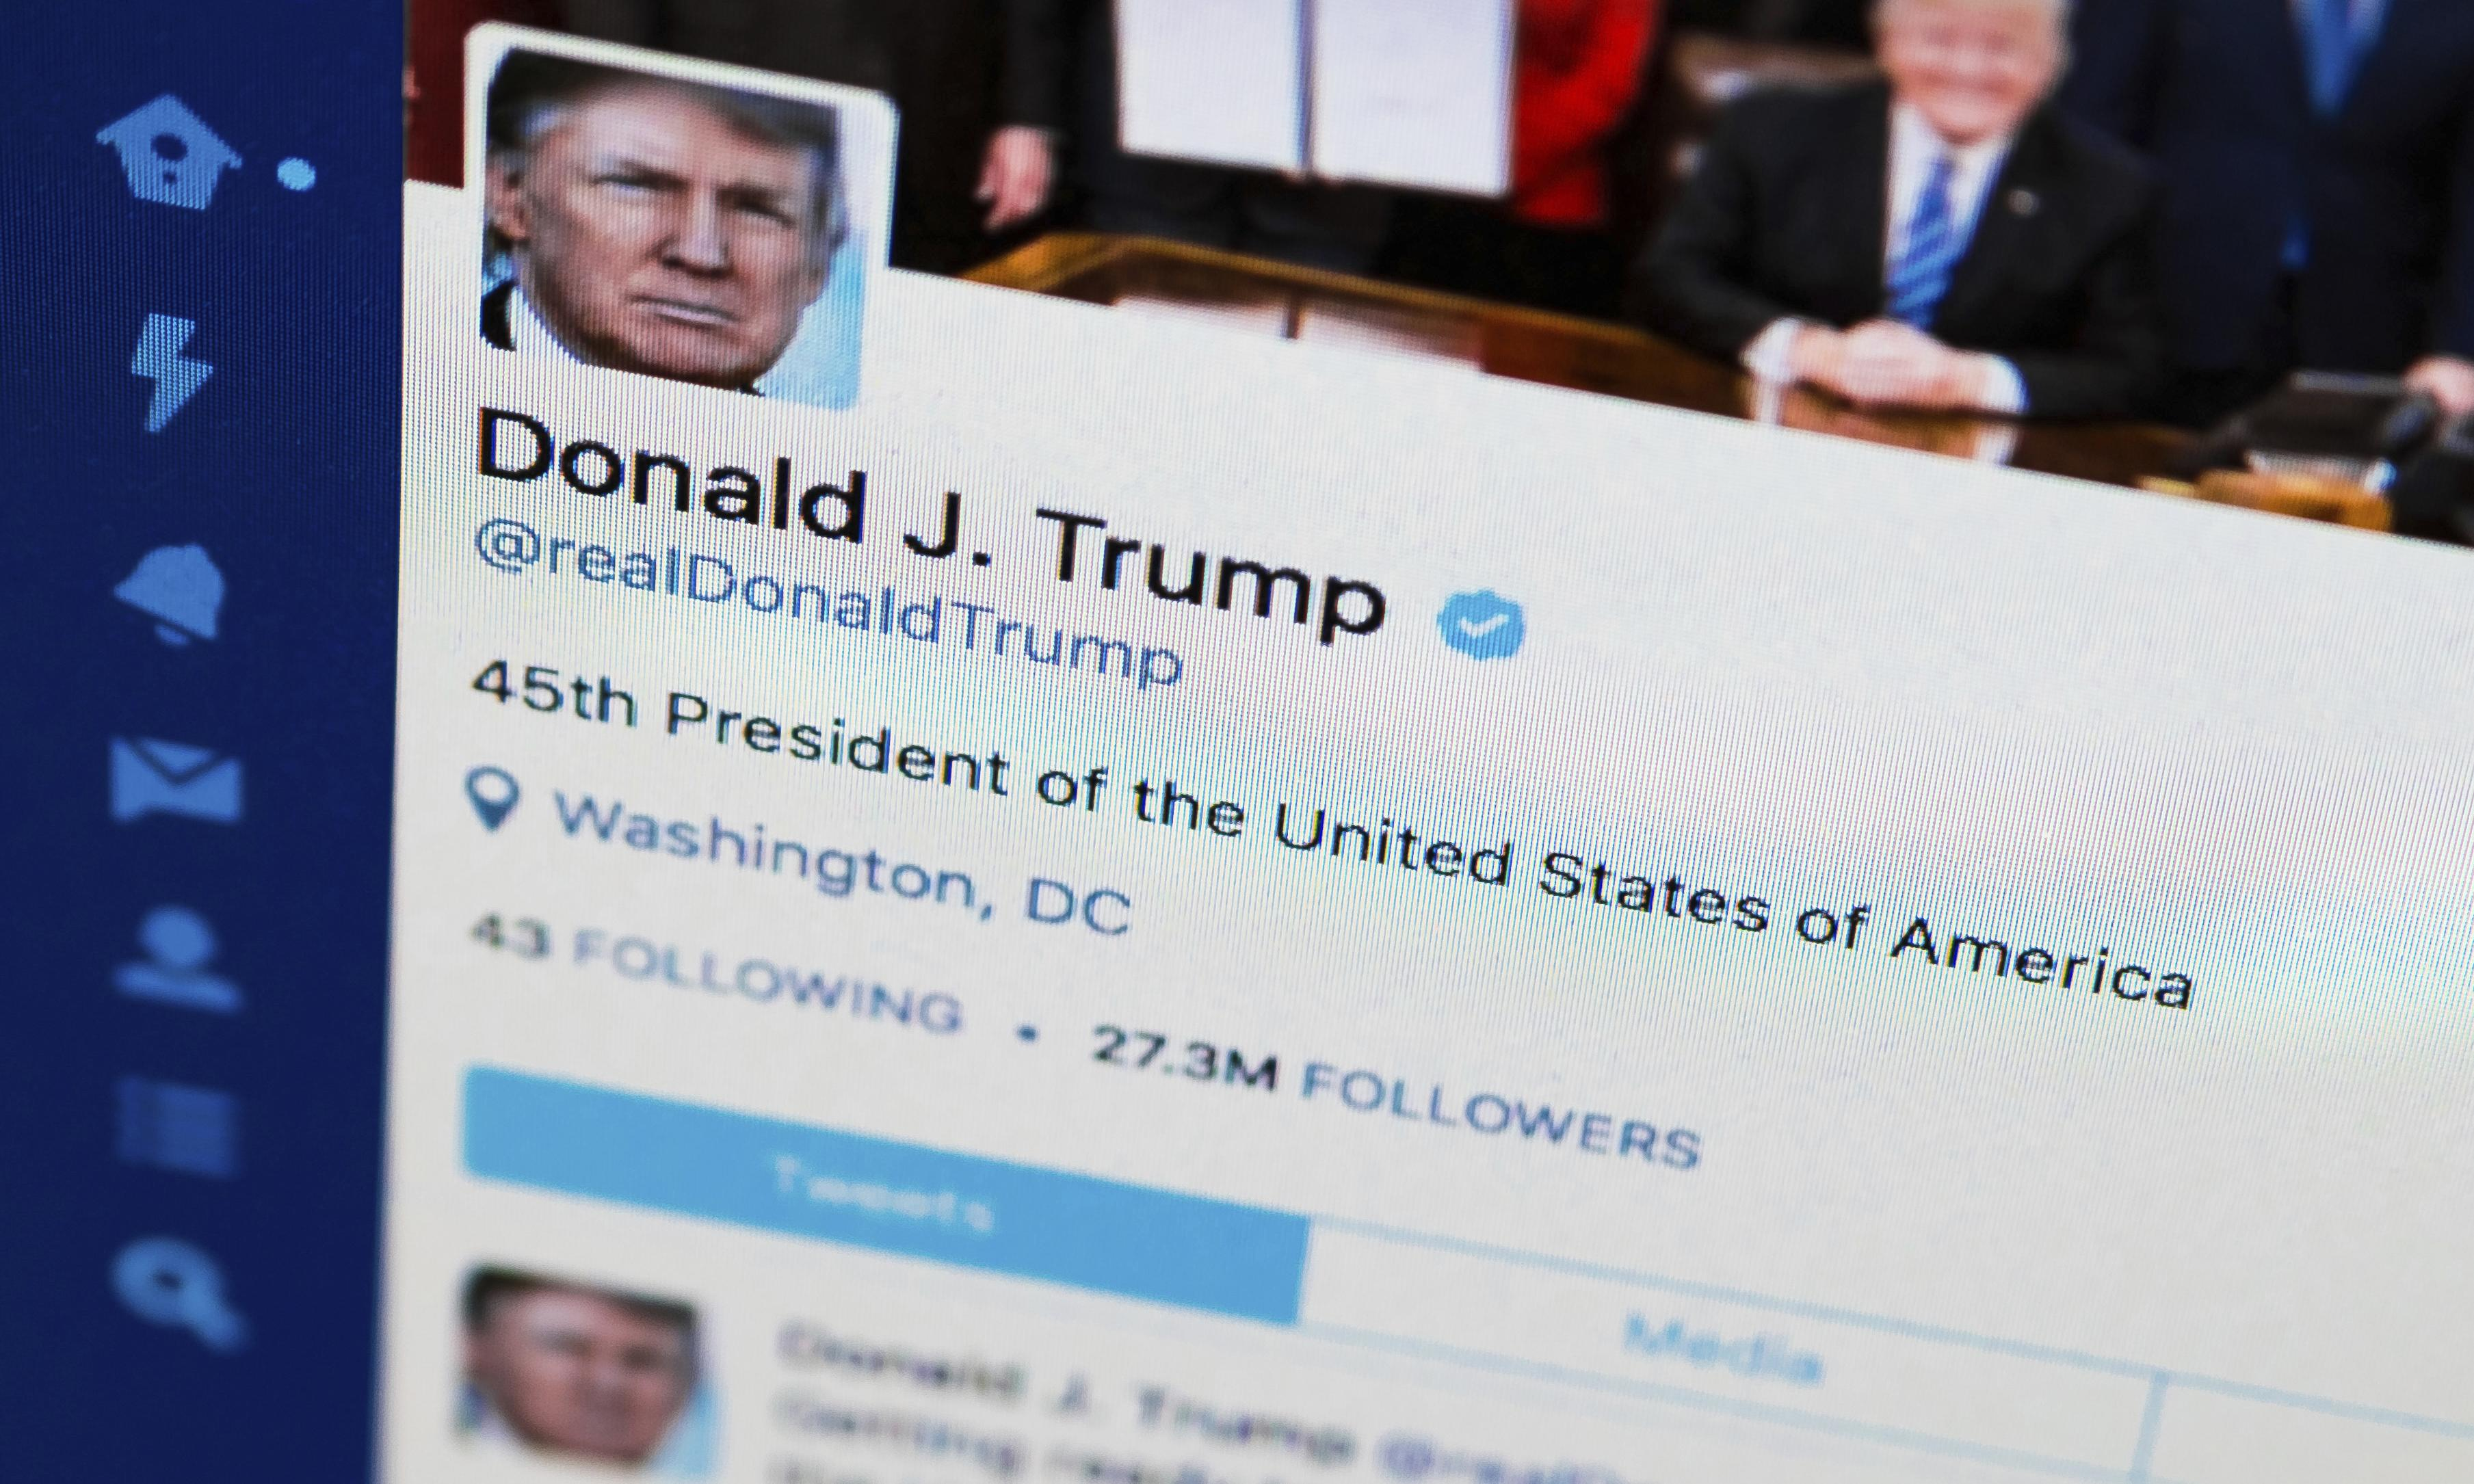 Trump violated US constitution by blocking critics on Twitter, federal court rules